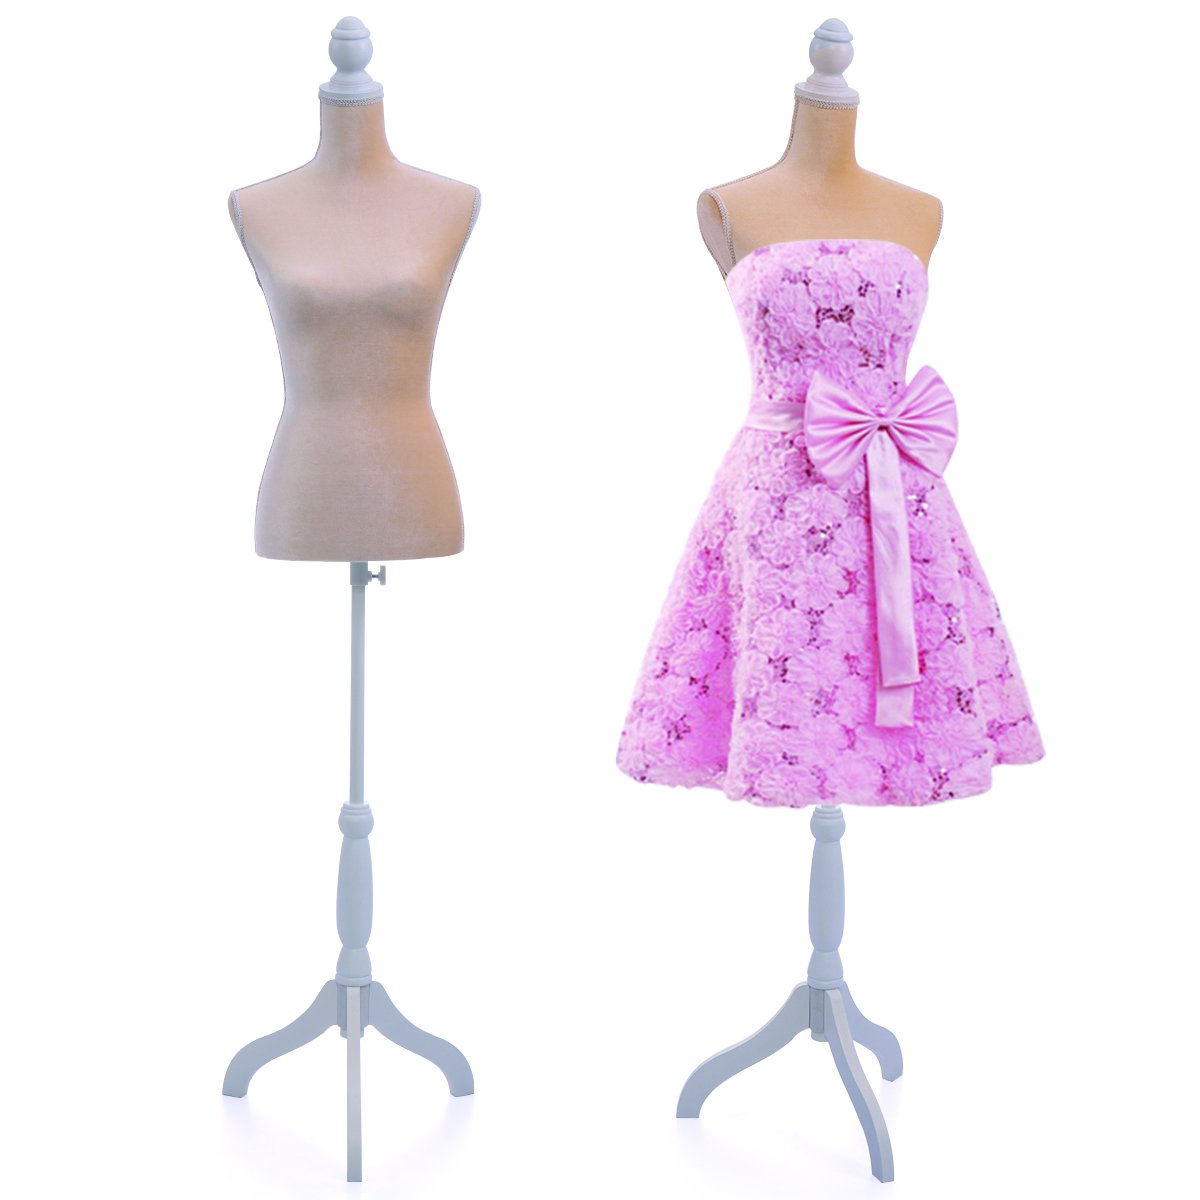 JAXPETY Velvet Female Mannequin Torso Clothing Dress Display W/Tripod Stand